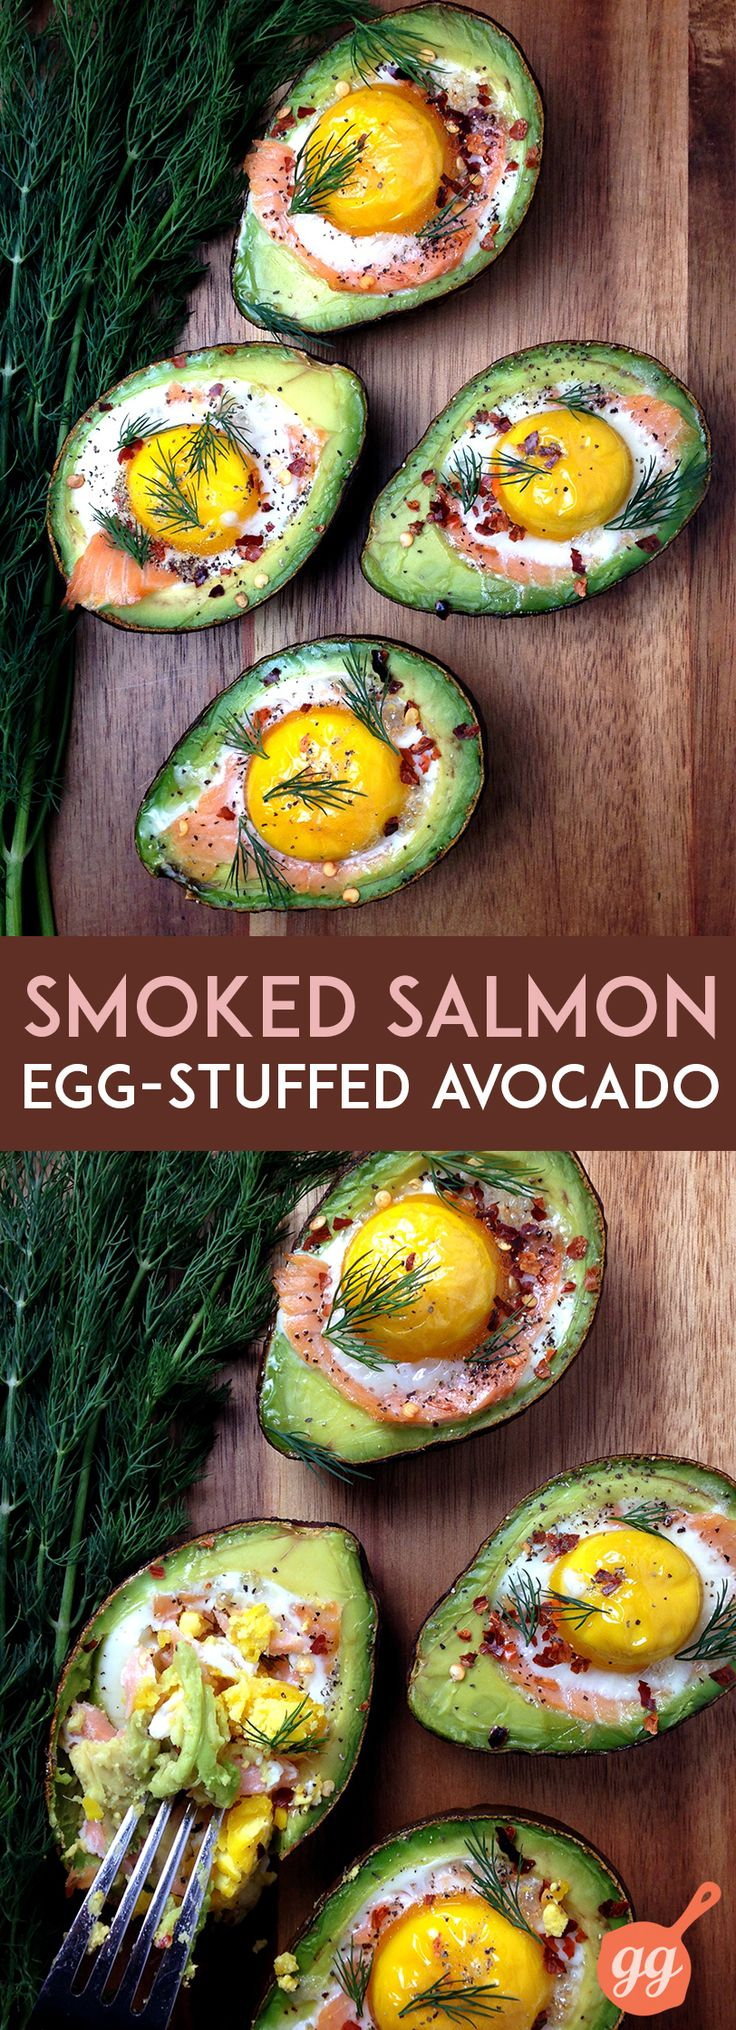 Smoked Salmon Egg Stuffed Avocado | GrokGrub.com #breakfast #healthy #omega3